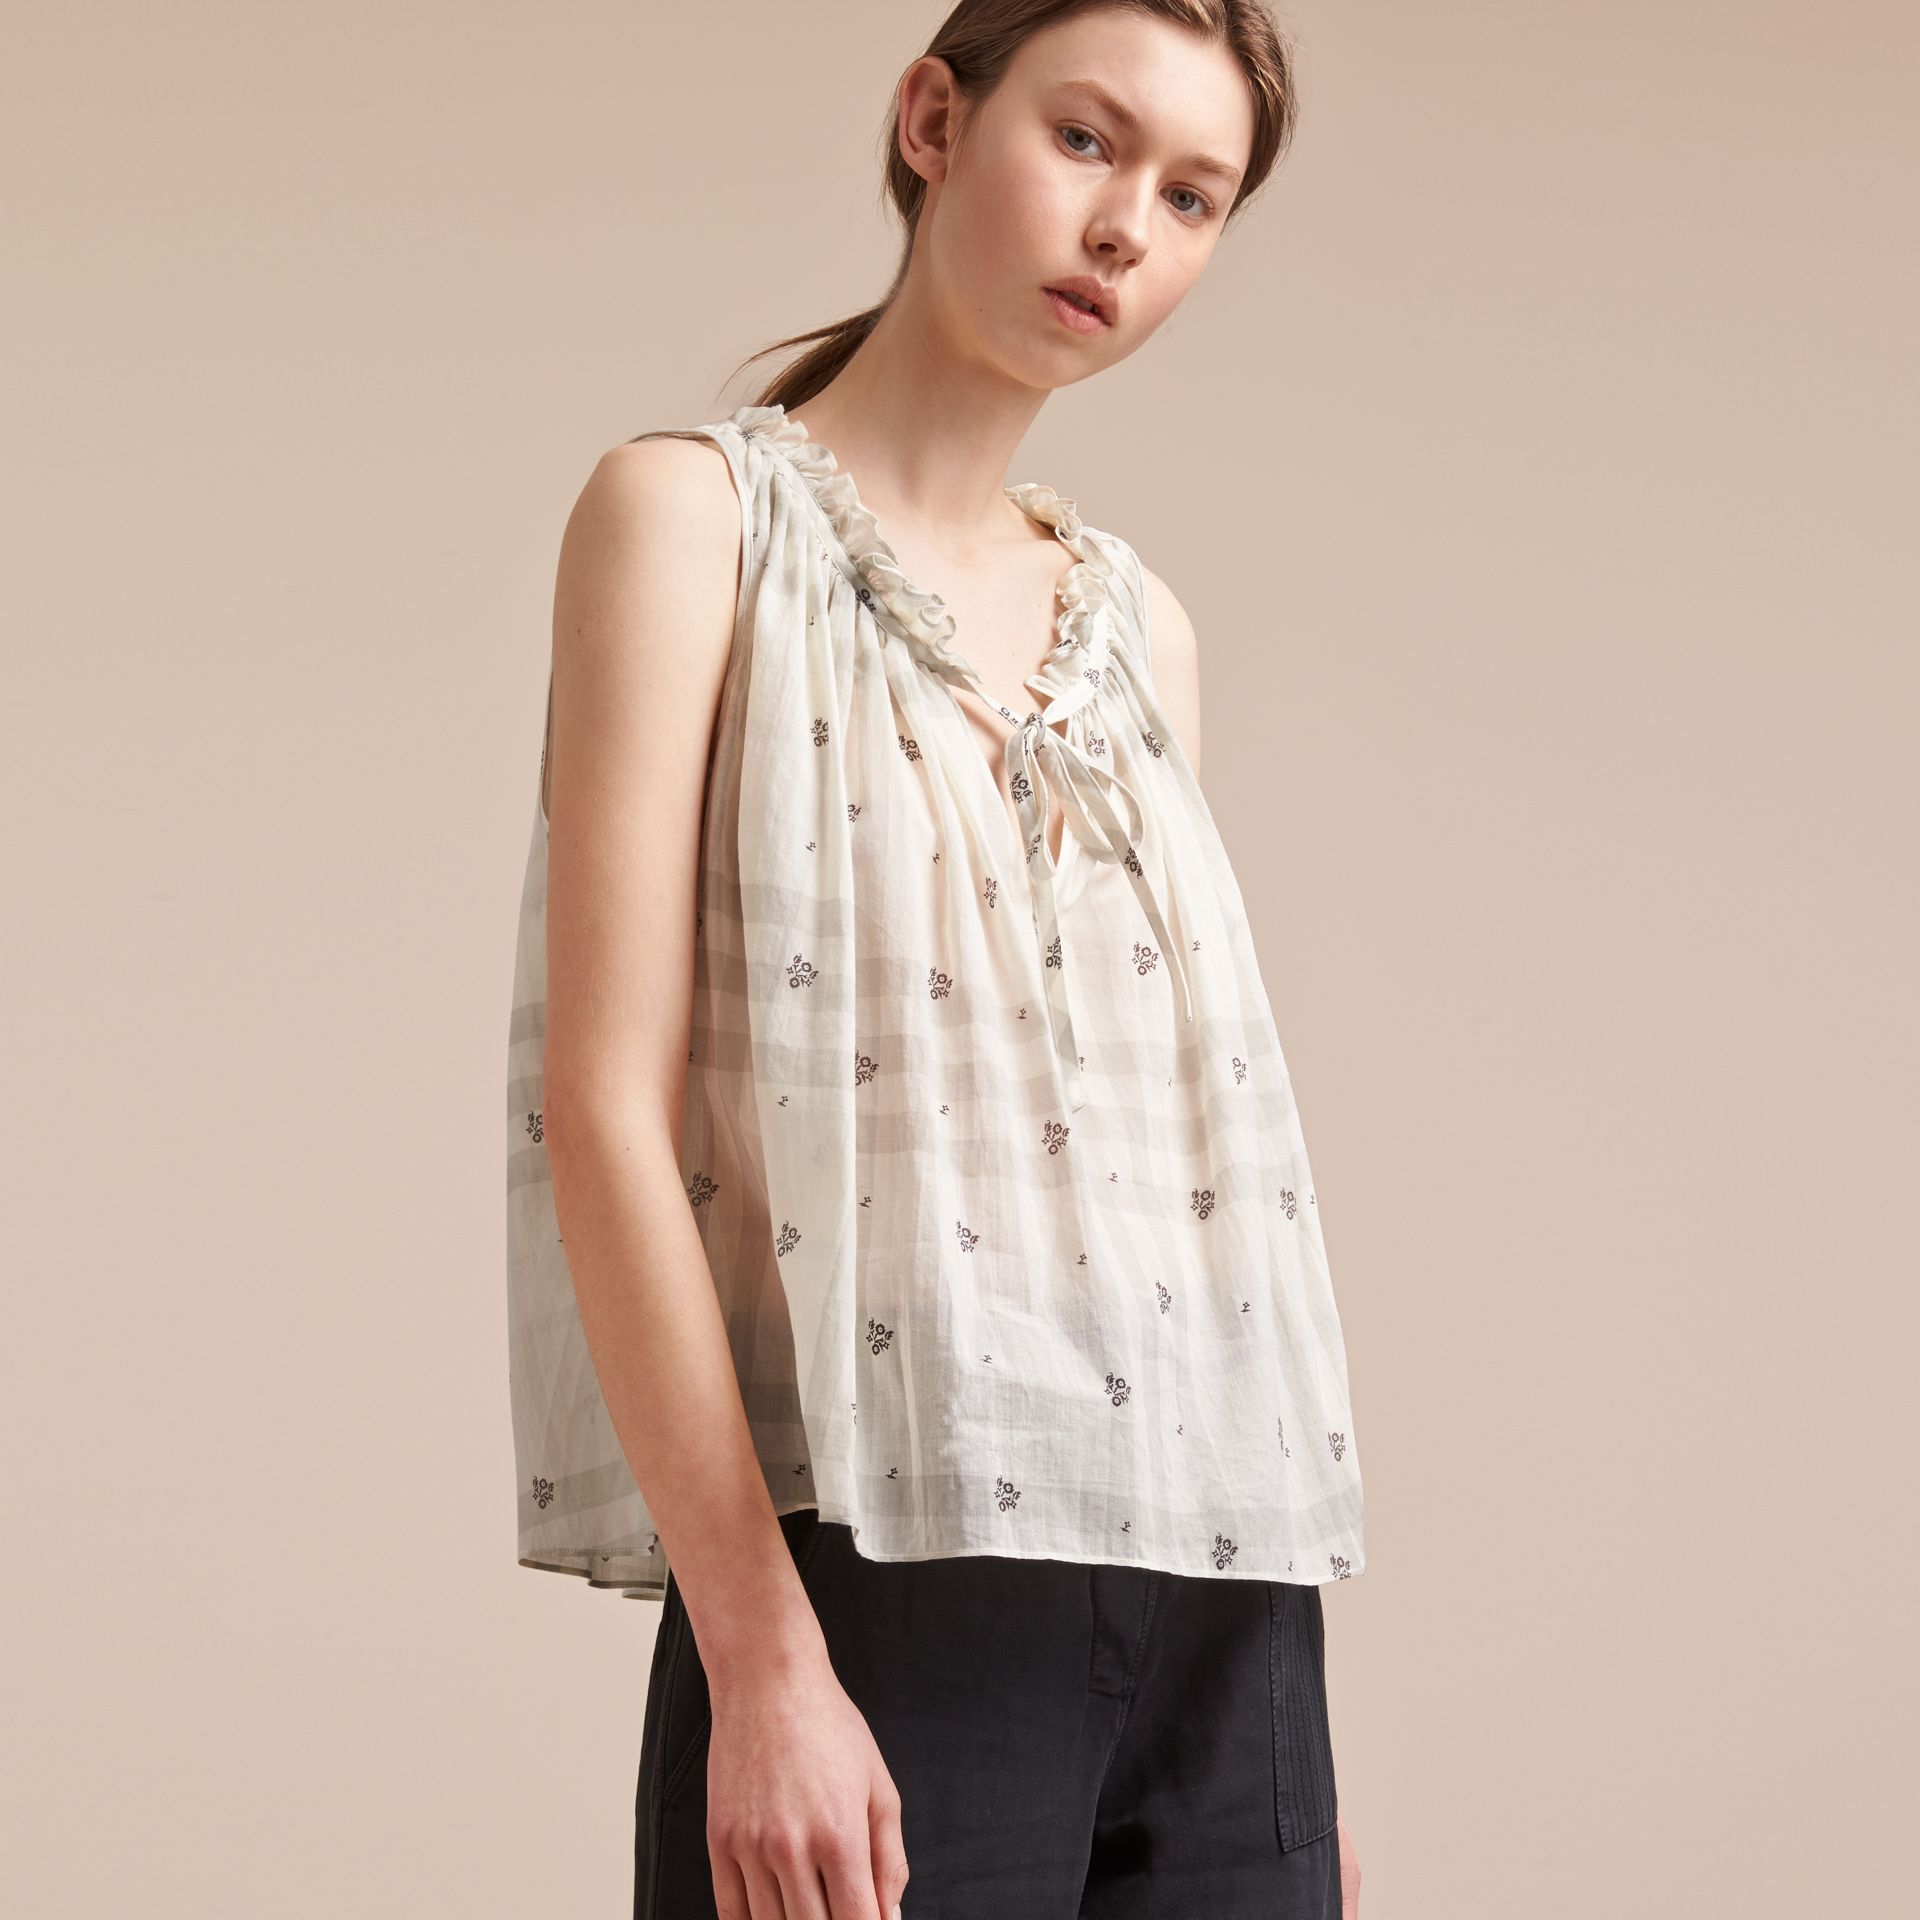 Sleeveless Lightweight Cotton Tie V-neck Top in White - Women | Burberry Singapore - gallery image 6